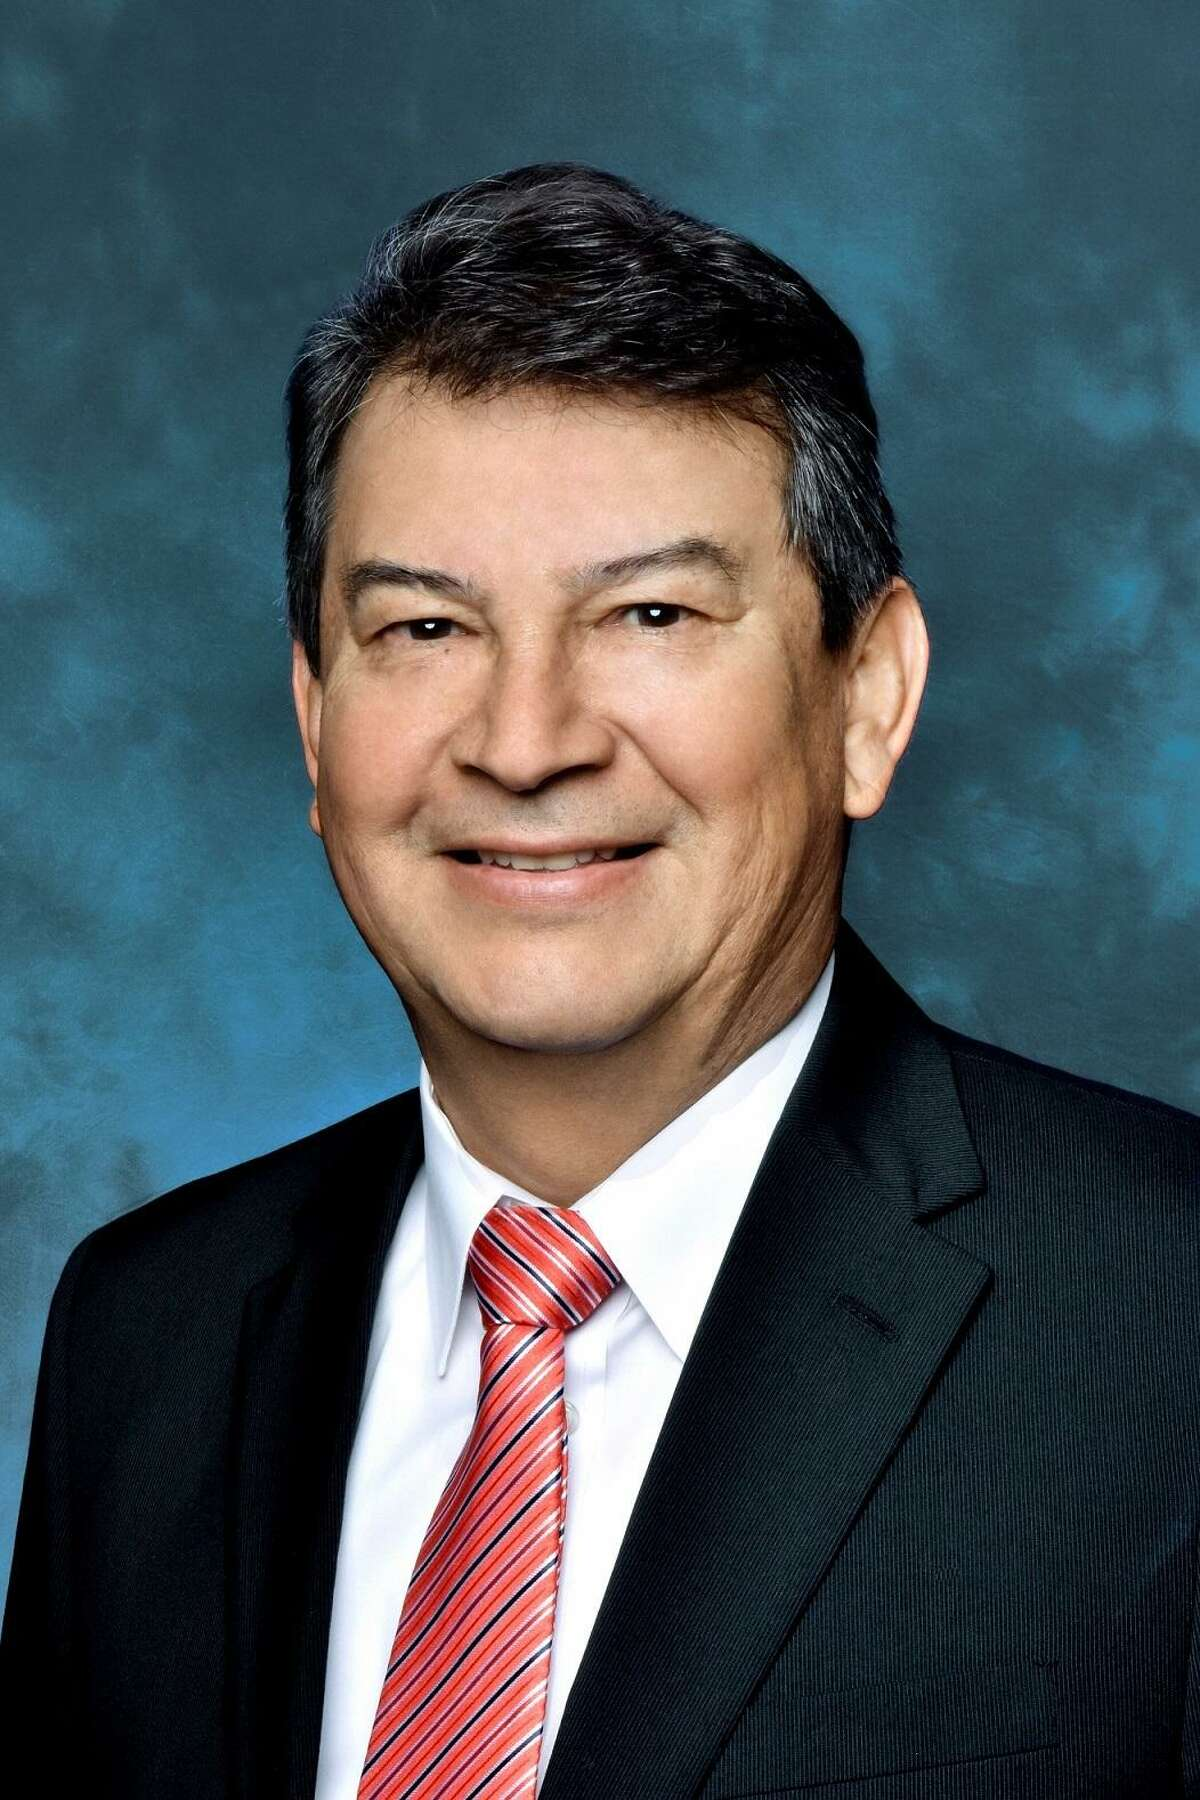 Alex Hinojosa has been named acting managing director of the San Antonio-based North American Development Bank.